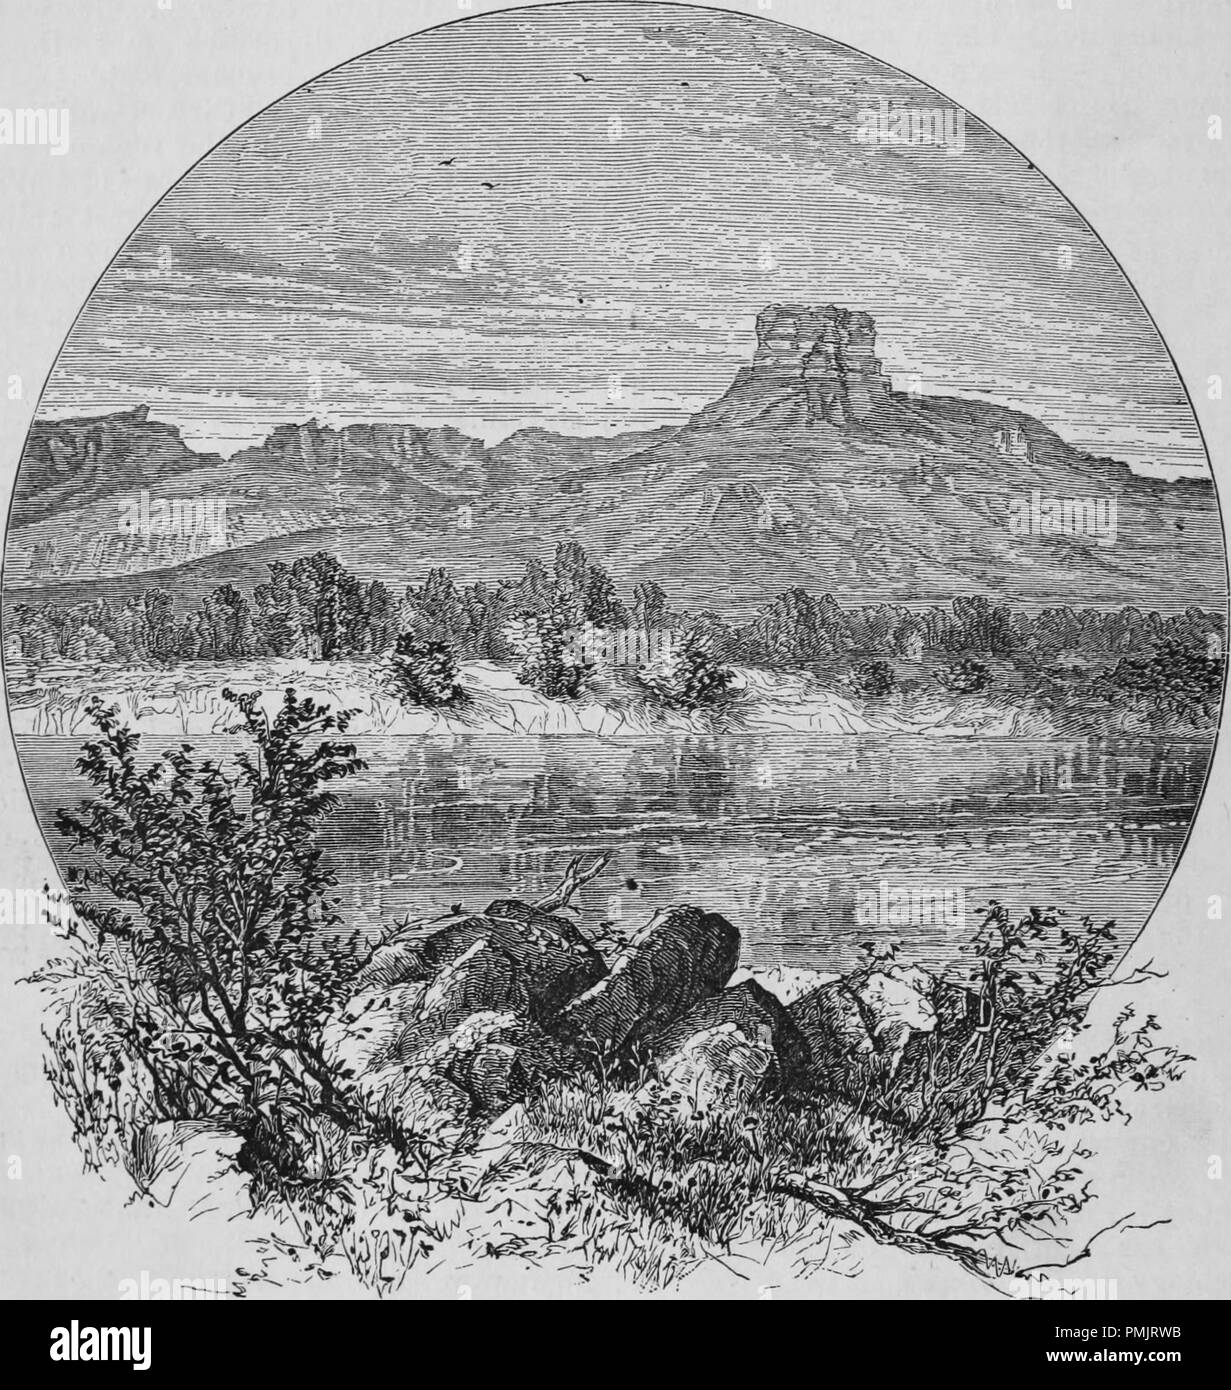 Engraving of the Green River flowing below the Castle Rock in Wyoming, from the book 'The Pacific tourist', 1877. Courtesy Internet Archive. () - Stock Image